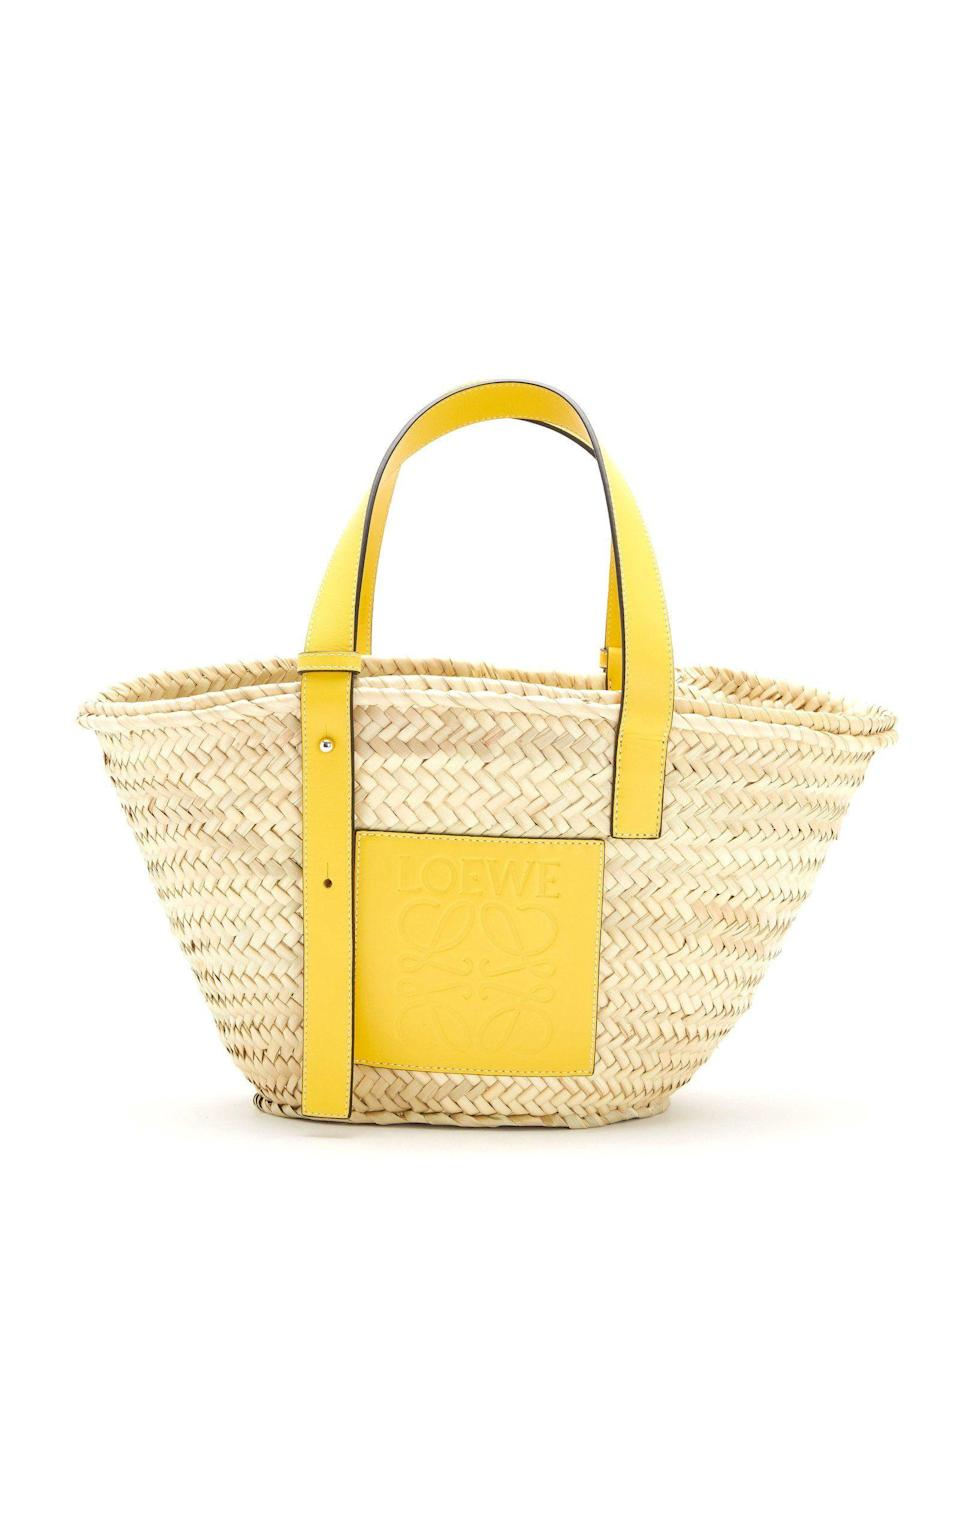 """<p><strong>Loewe</strong></p><p>modaoperandi.com</p><p><strong>$490.00</strong></p><p><a href=""""https://go.redirectingat.com?id=74968X1596630&url=https%3A%2F%2Fwww.modaoperandi.com%2Fwomen%2Fp%2Floewe%2Fbasket-bag%2F454316&sref=https%3A%2F%2Fwww.cosmopolitan.com%2Fstyle-beauty%2Ffashion%2Fg36233082%2Fbest-straw-bags%2F"""" rel=""""nofollow noopener"""" target=""""_blank"""" data-ylk=""""slk:Shop Now"""" class=""""link rapid-noclick-resp"""">Shop Now</a></p><p>If you're gonna ball out on a bag, it might as well be a Loewe one. This luxury straw design is seen on A-listers and influencers everywhere because of its leather details and subtle logo. </p>"""